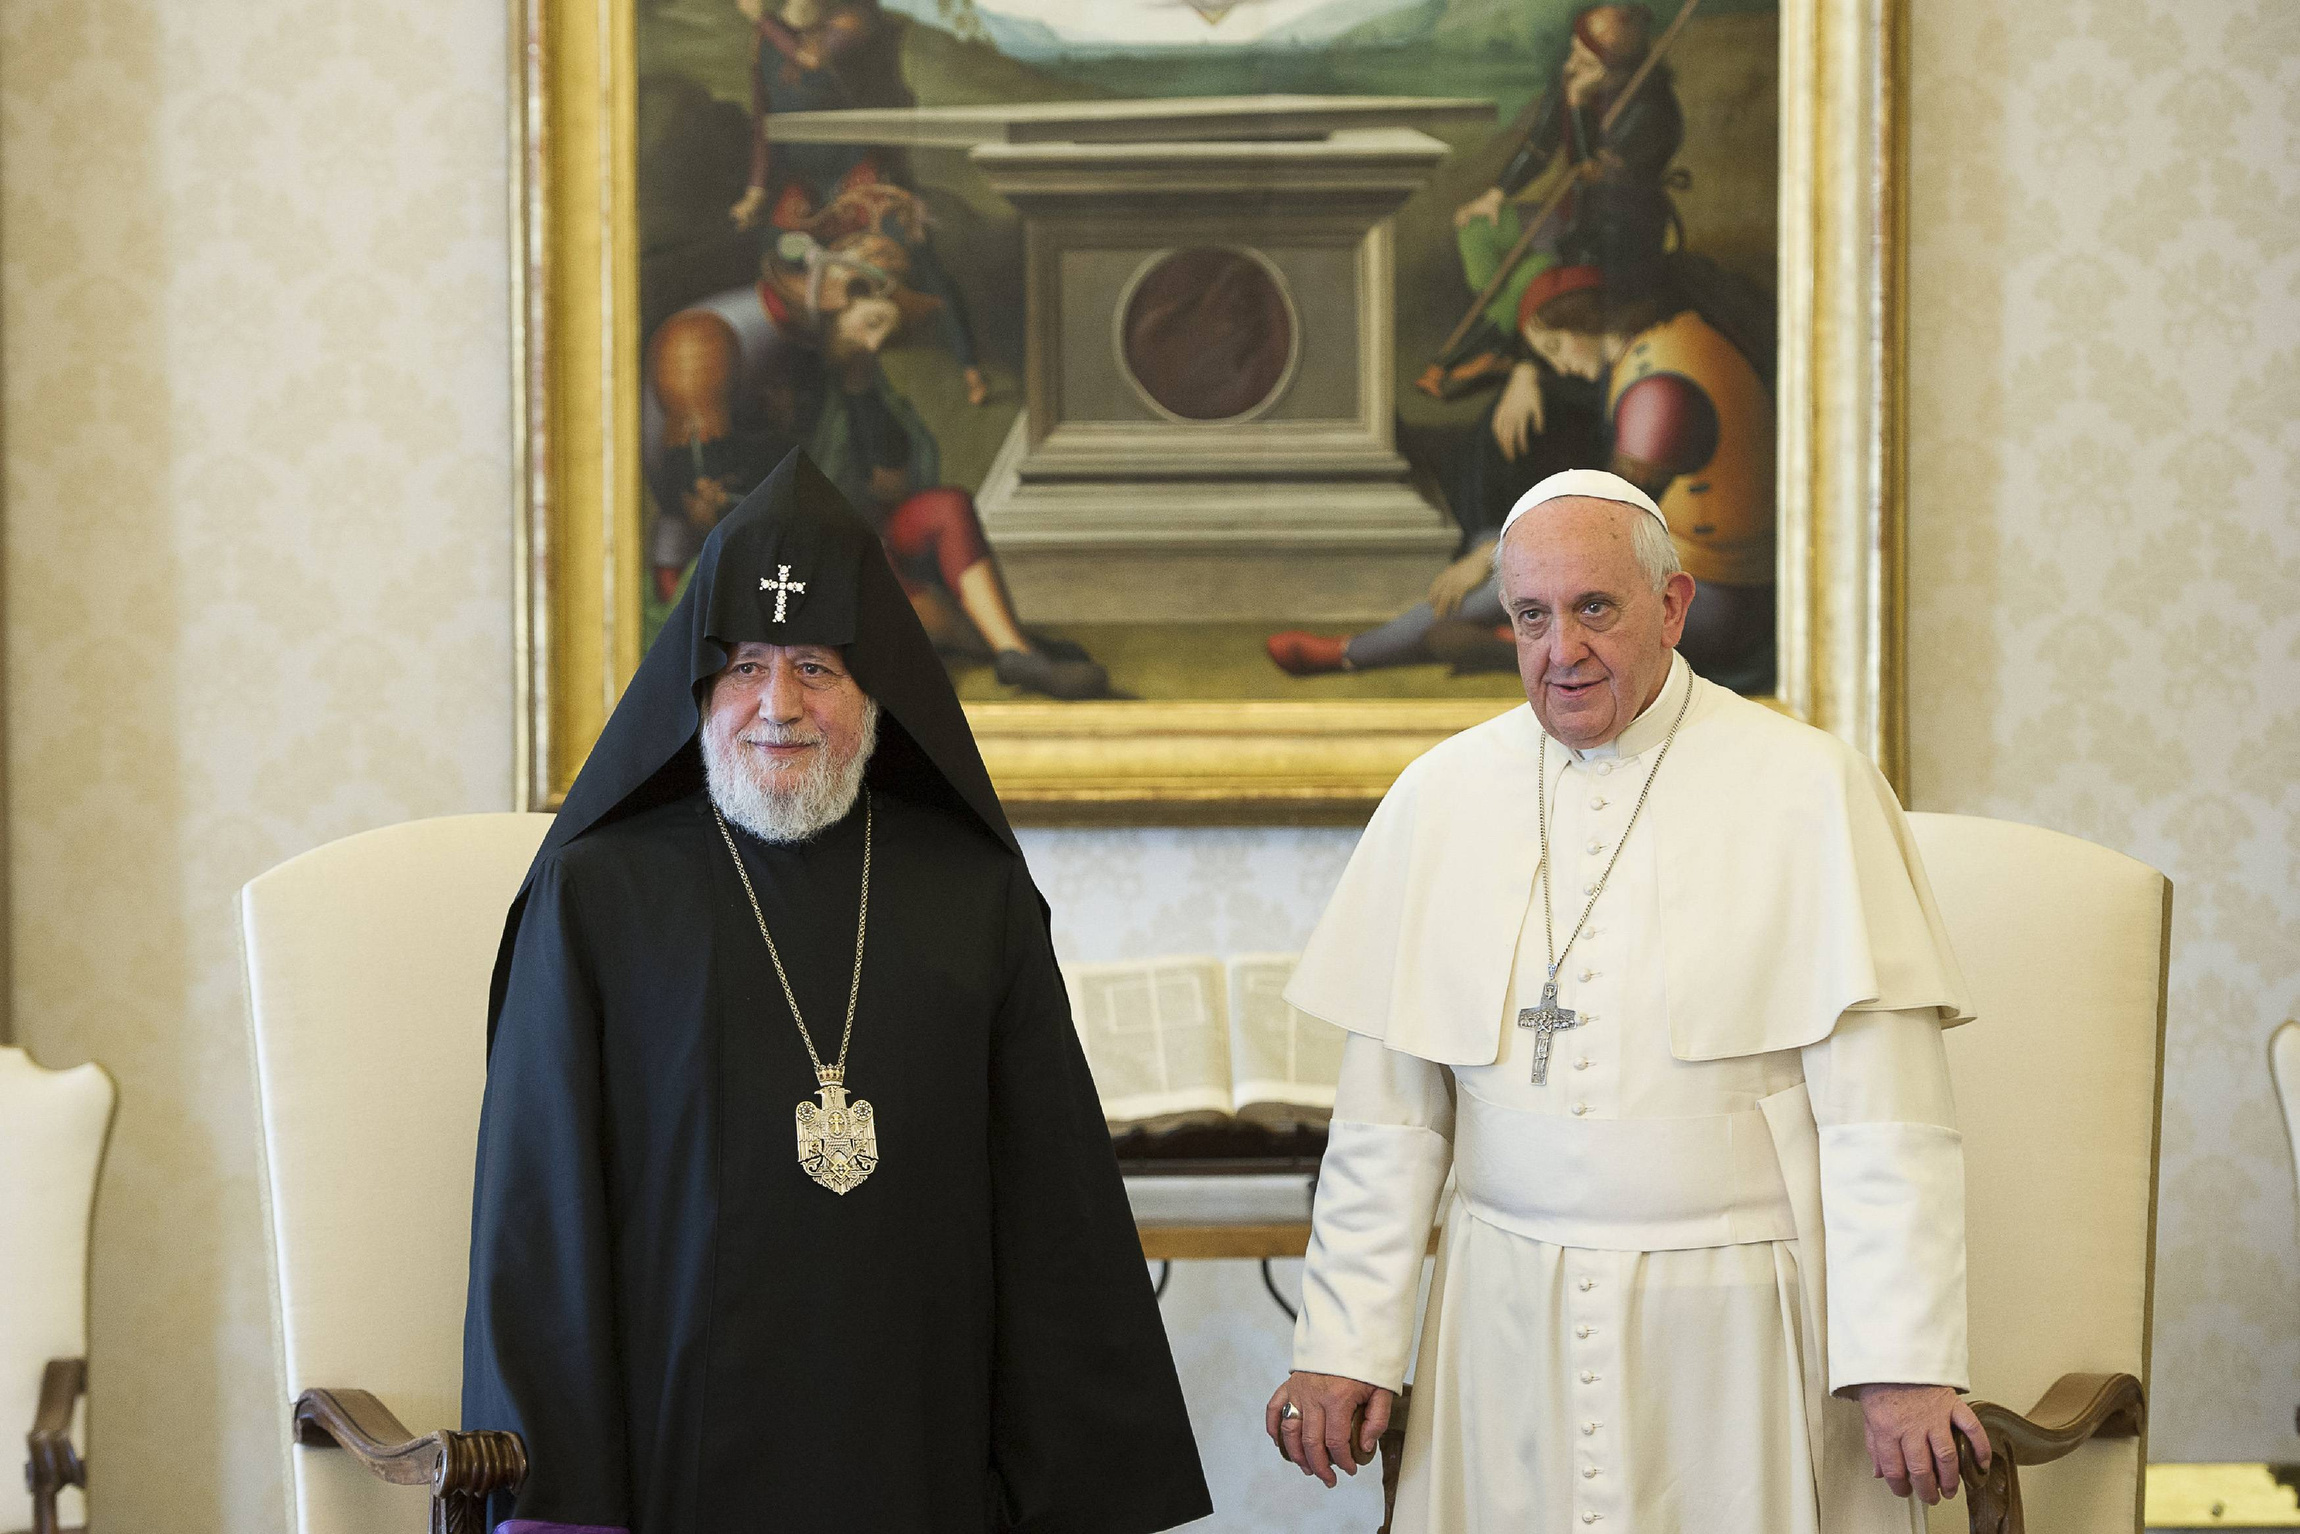 Catholicos Karekin II of Etchmiadzin, patriarch of the Armenian Apostolic Church, and Pope Francis pose for a photo during a meeting at the Vatican May 8. (CNS photo/L'Osservatore Romano via Reuters) (May 8, 2014) See POPE-ARMENIAN May 8, 2014.